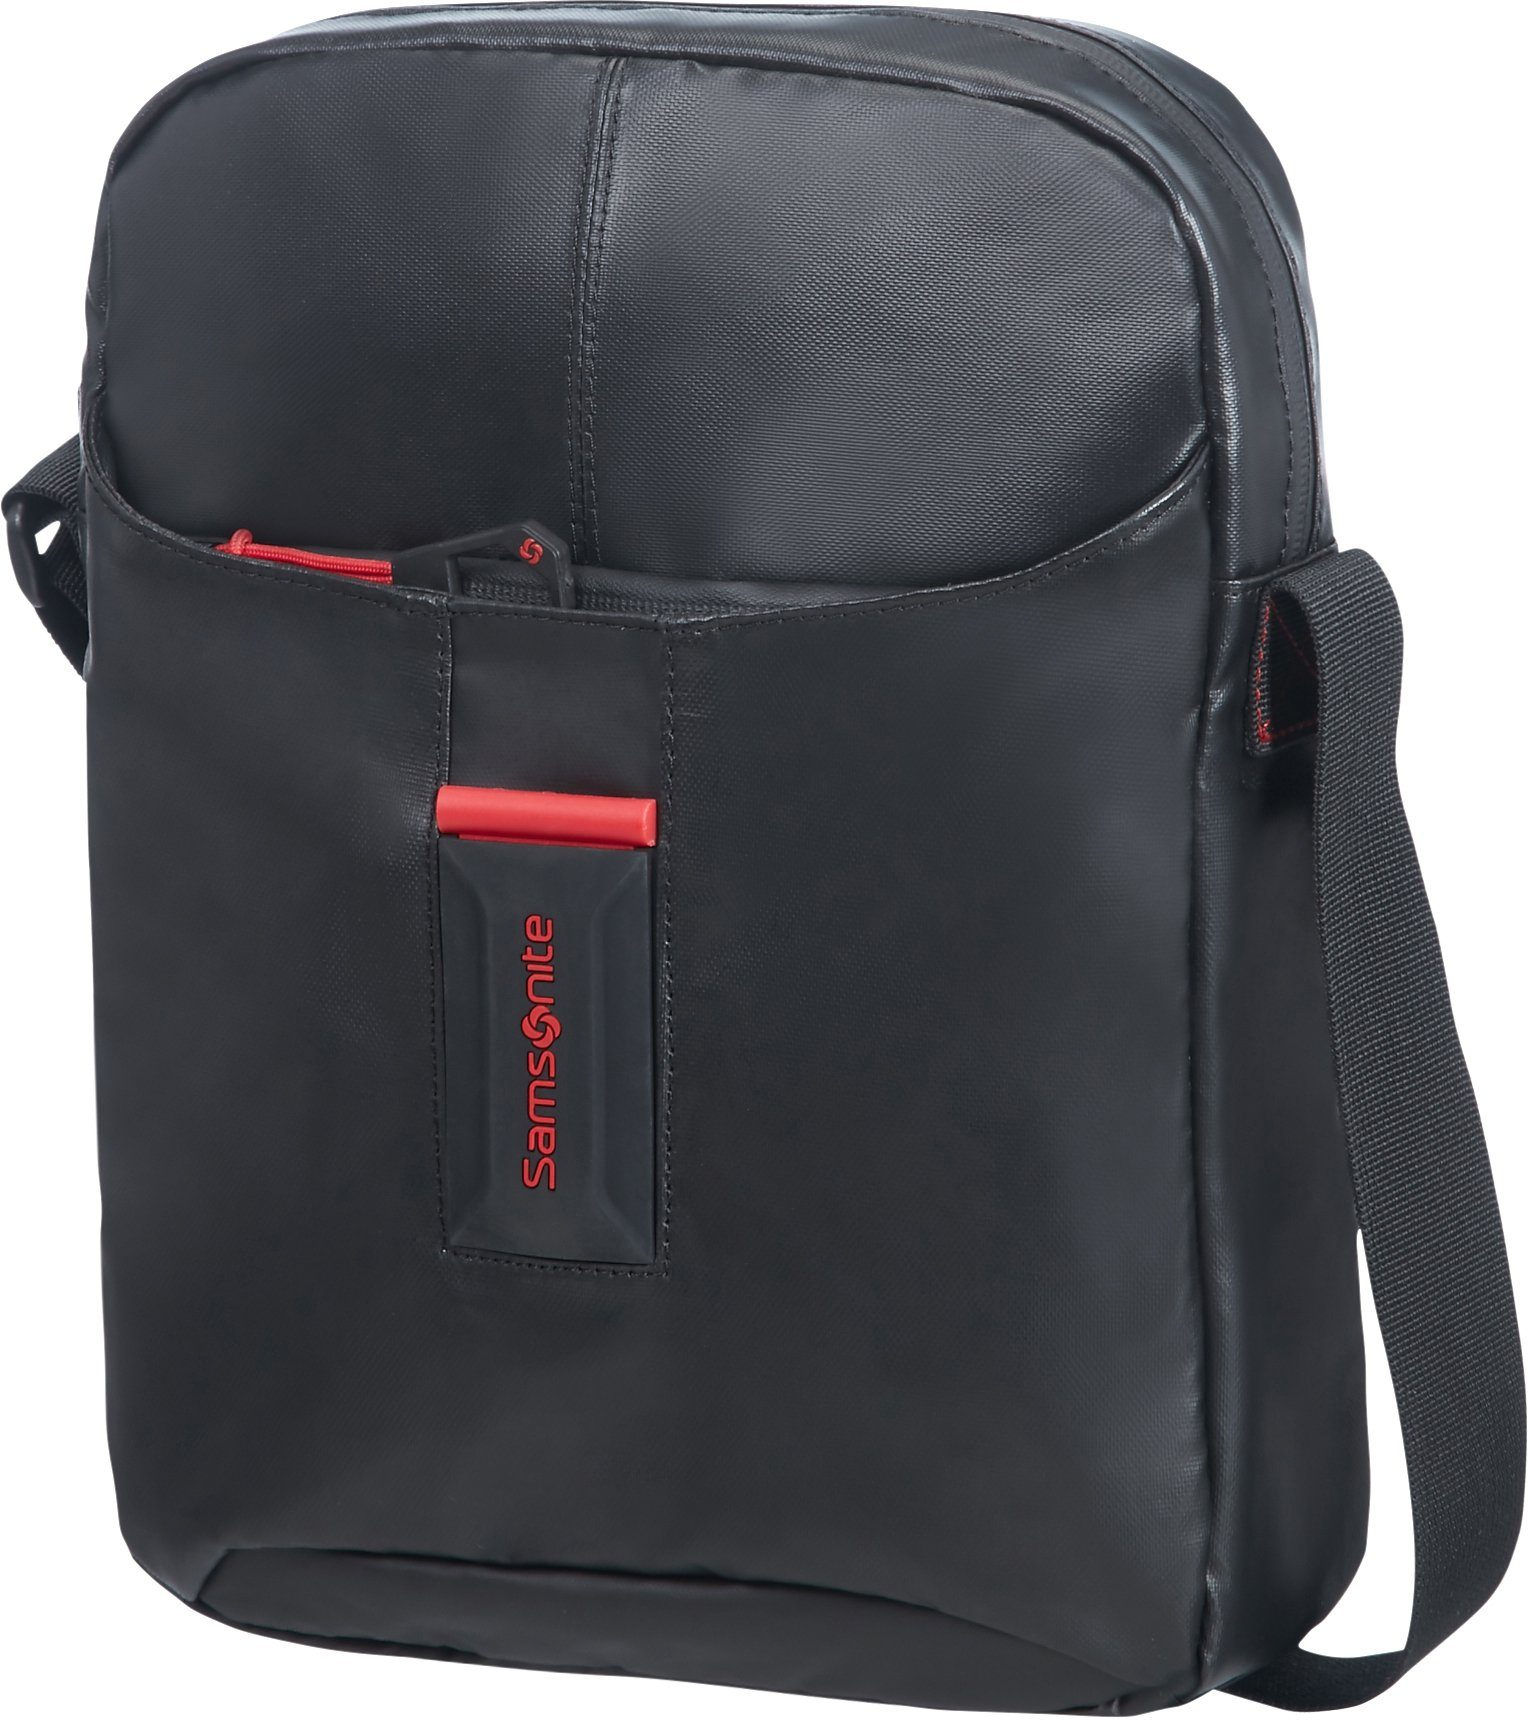 Samsonite Umhängetasche mit Tabletfach, »Paradiver Light Cross Over«